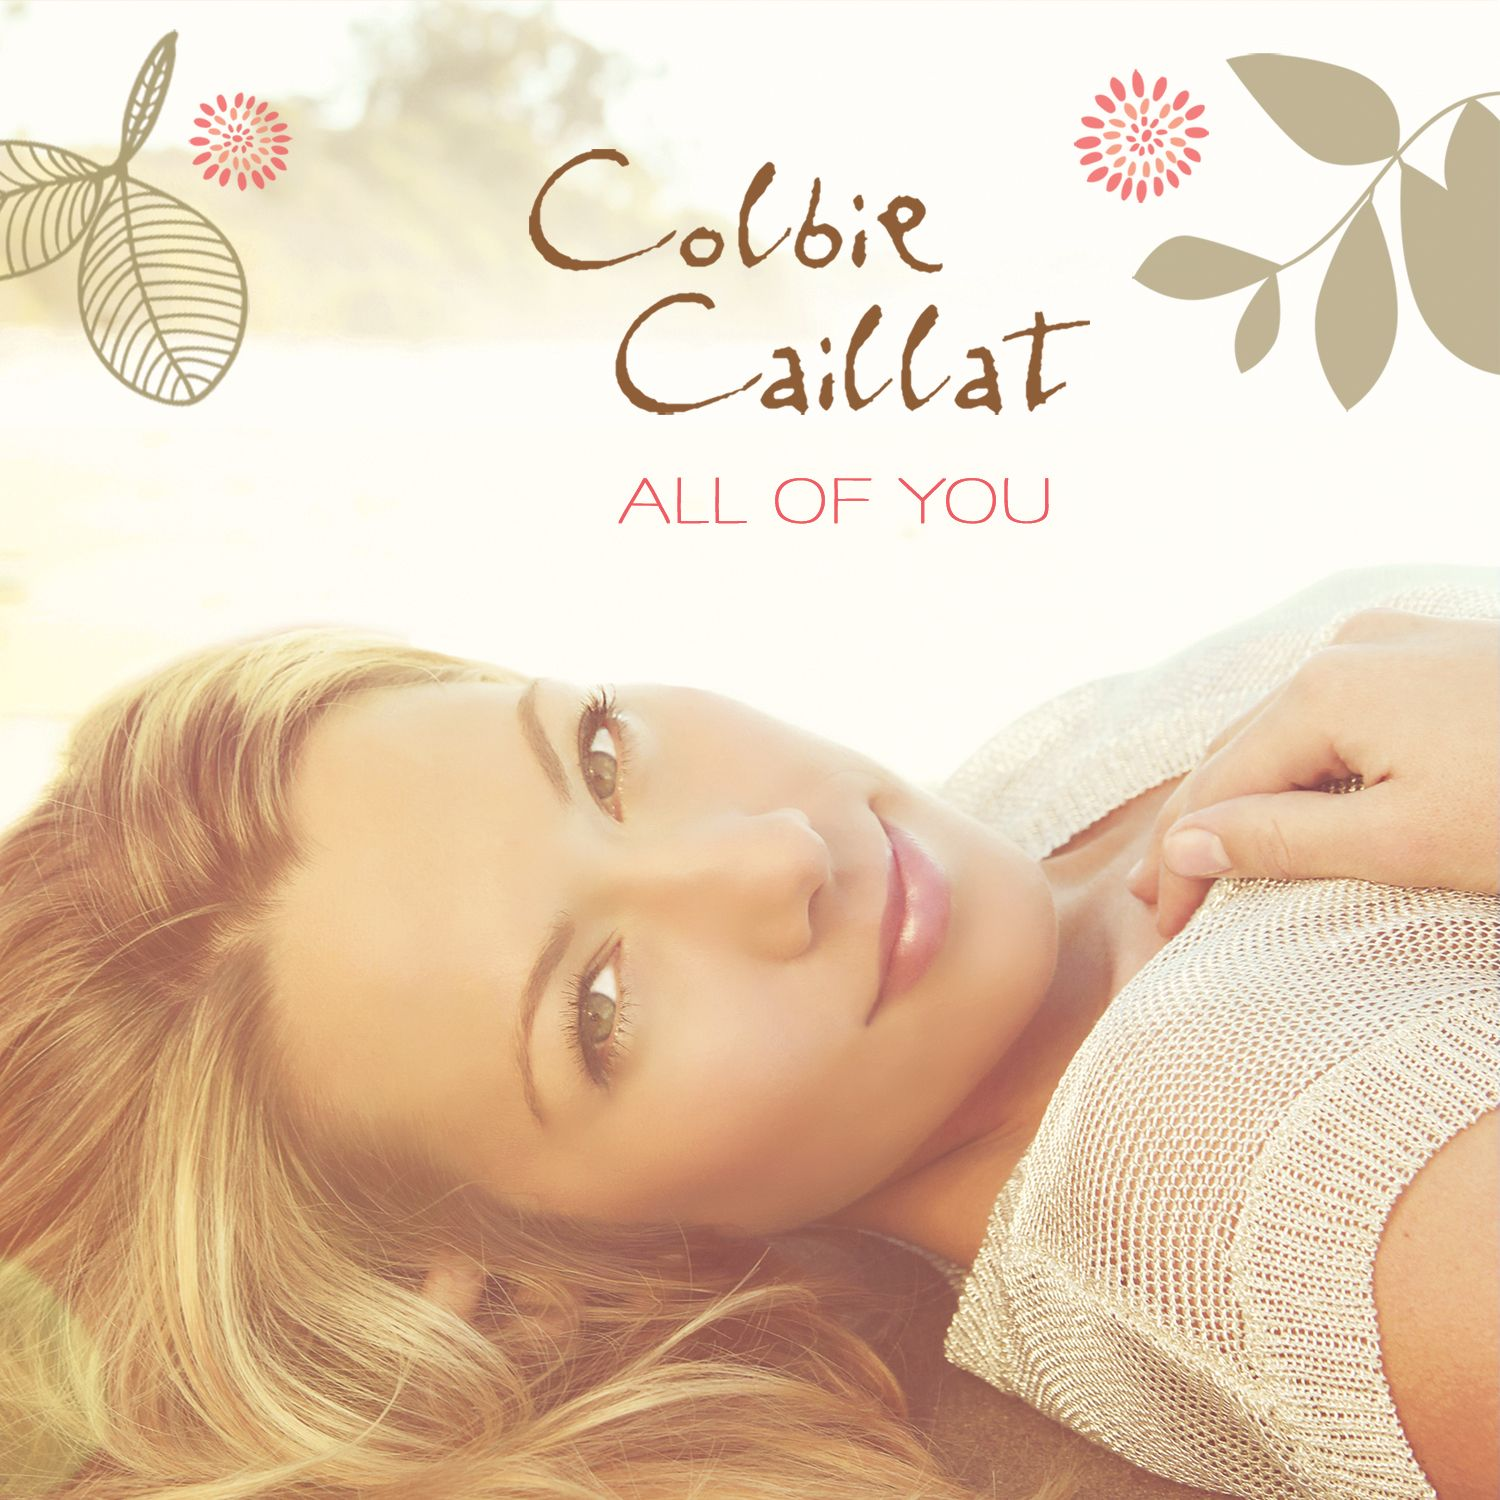 Colbie Caillat All Of You Colbie Caillat